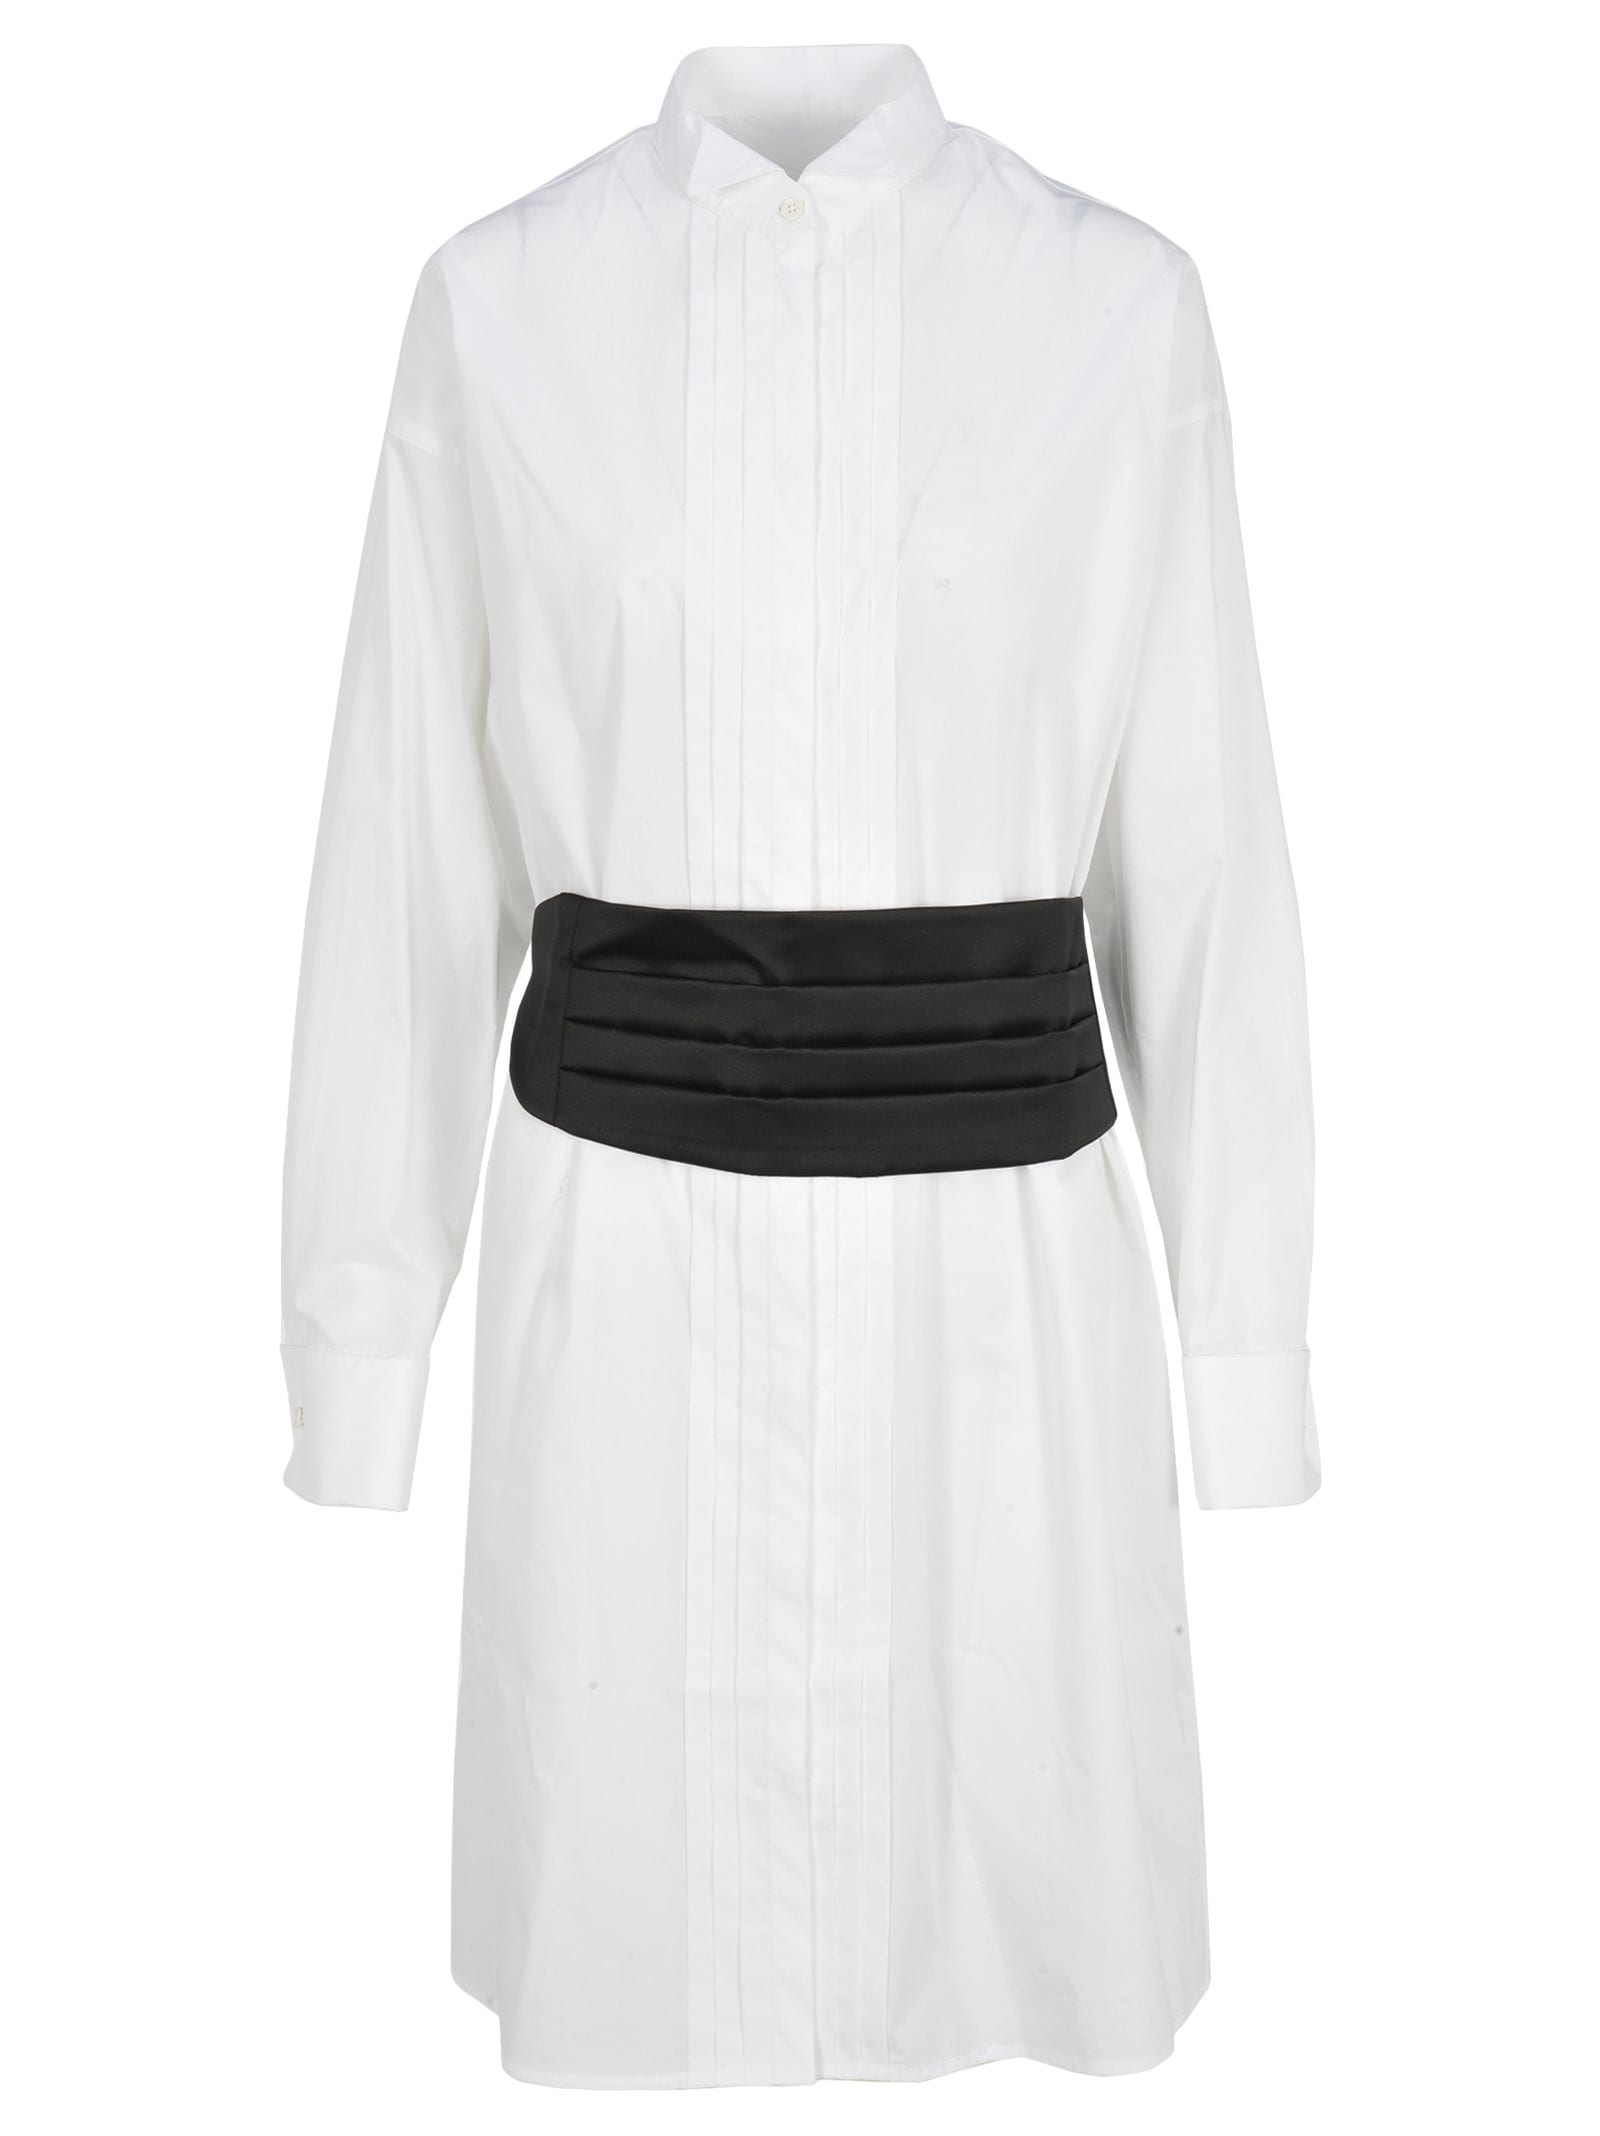 Mm6 Belted Chemisier Dress